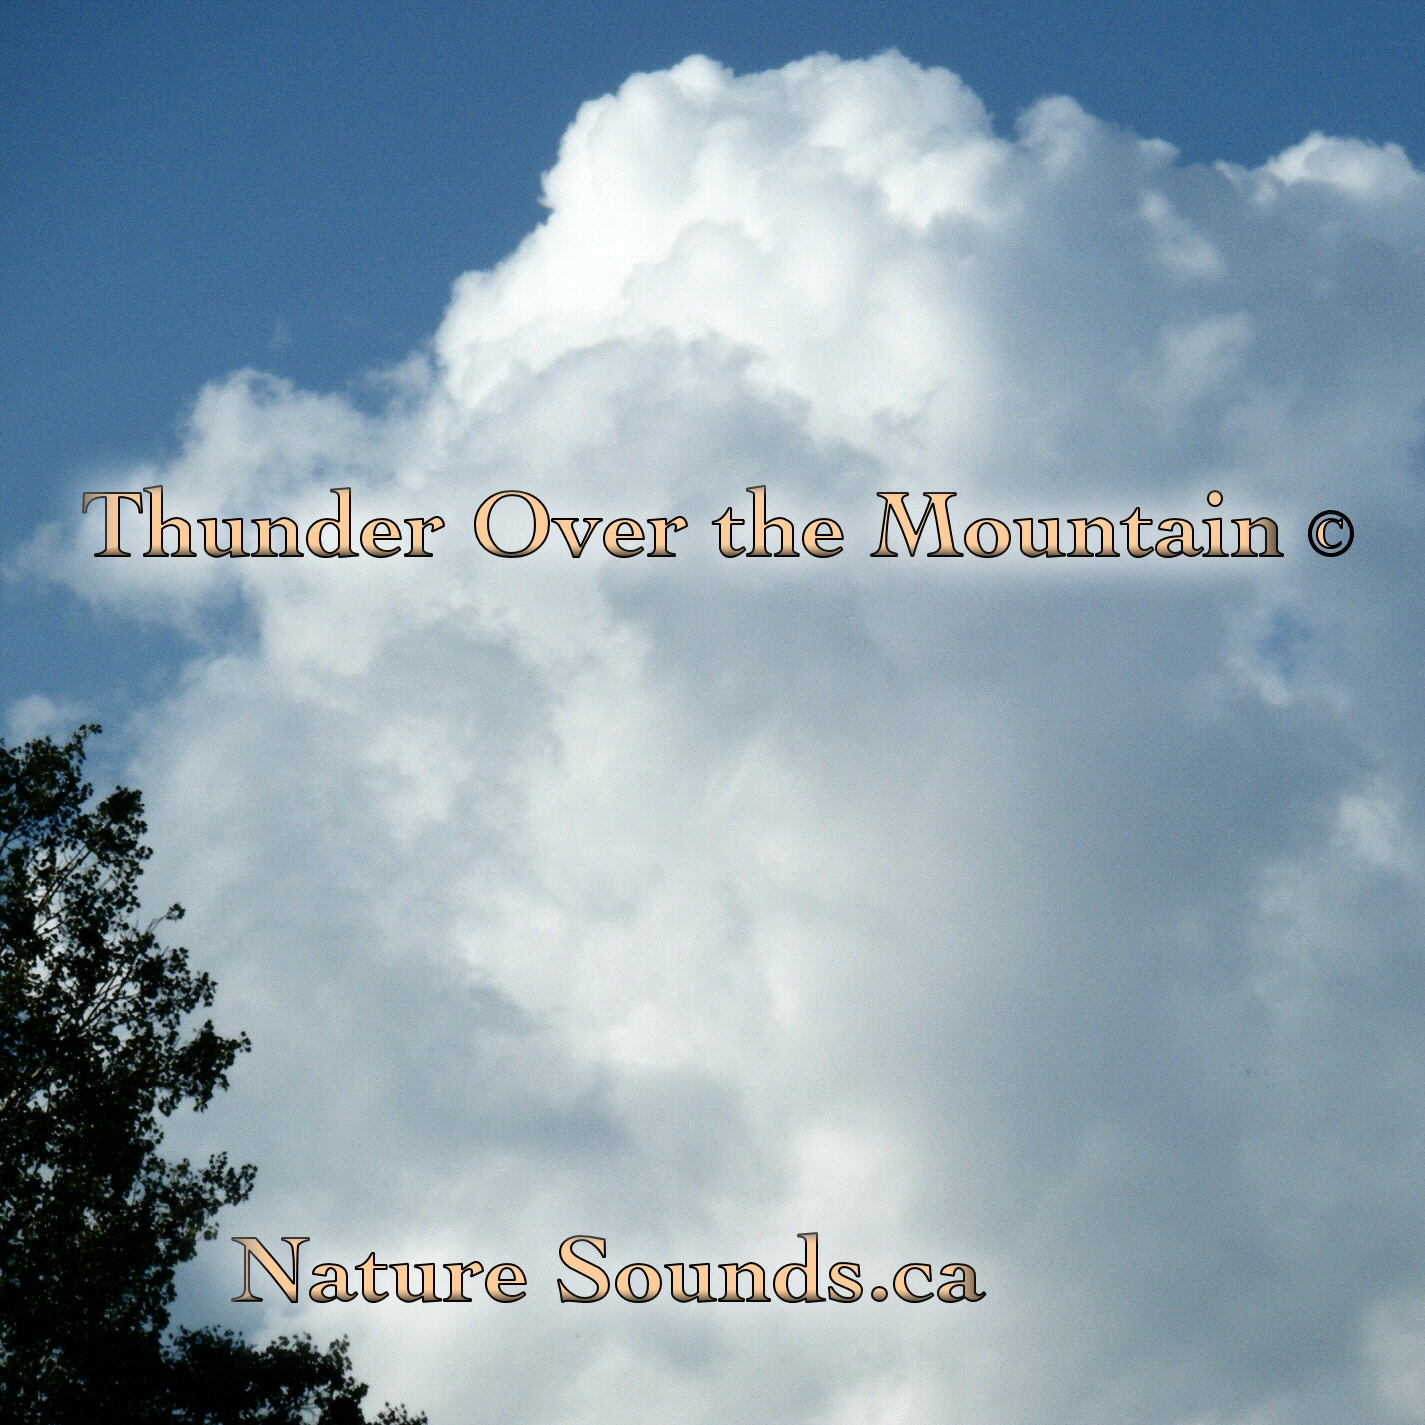 Thunder Over the Mountain © MP3 Download - Nature Sounds ca